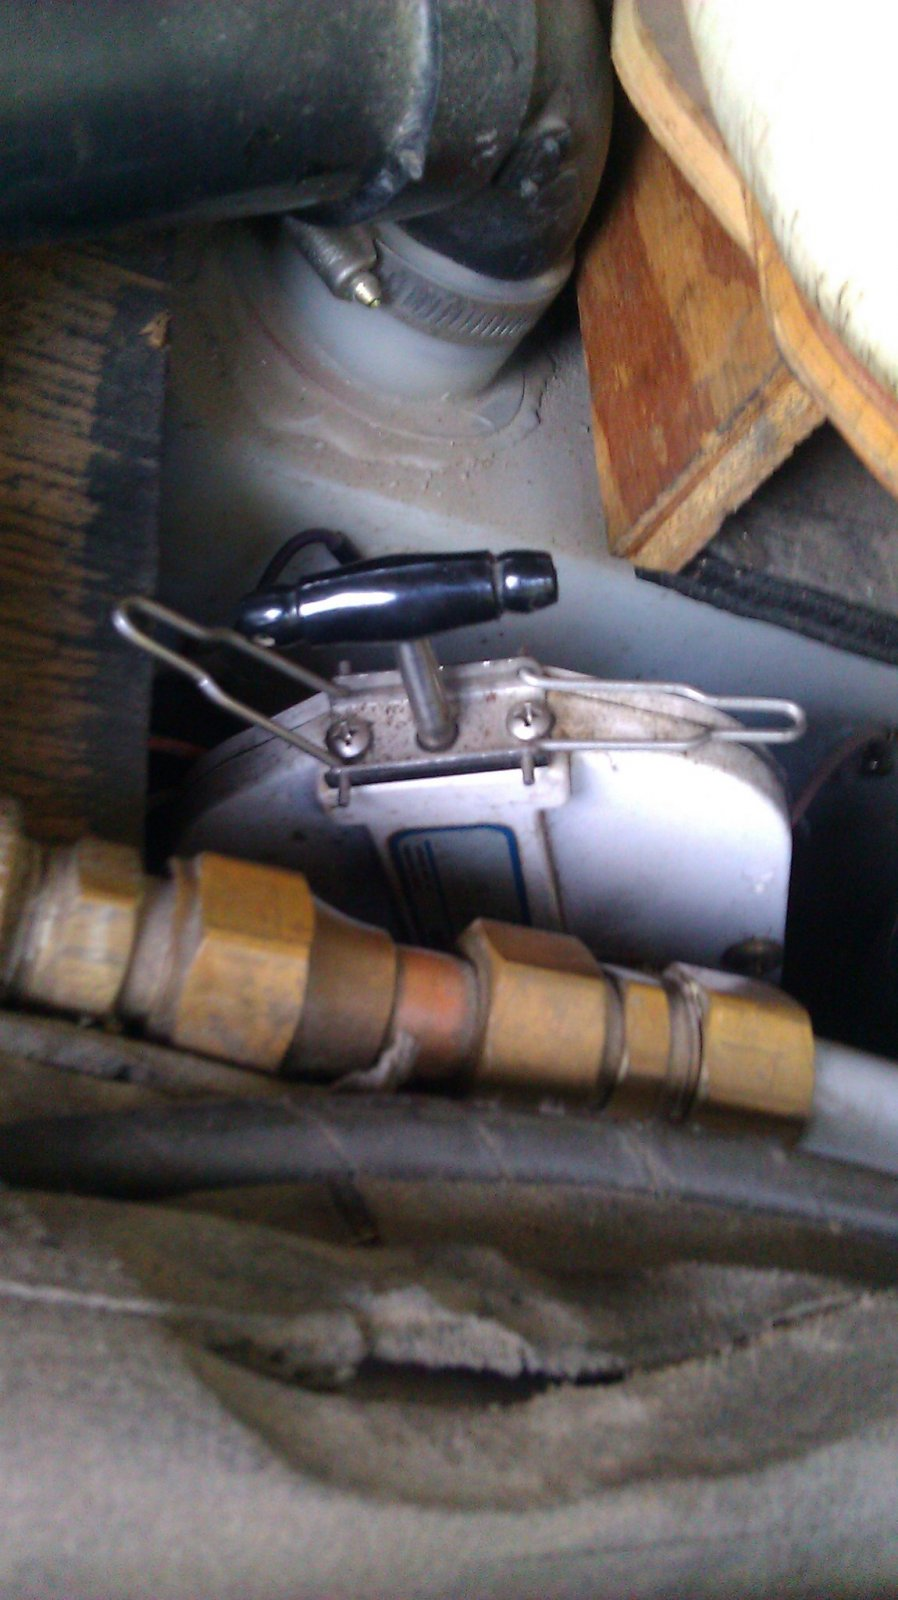 Click image for larger version  Name:Thetford valve.jpg Views:120 Size:187.4 KB ID:127961